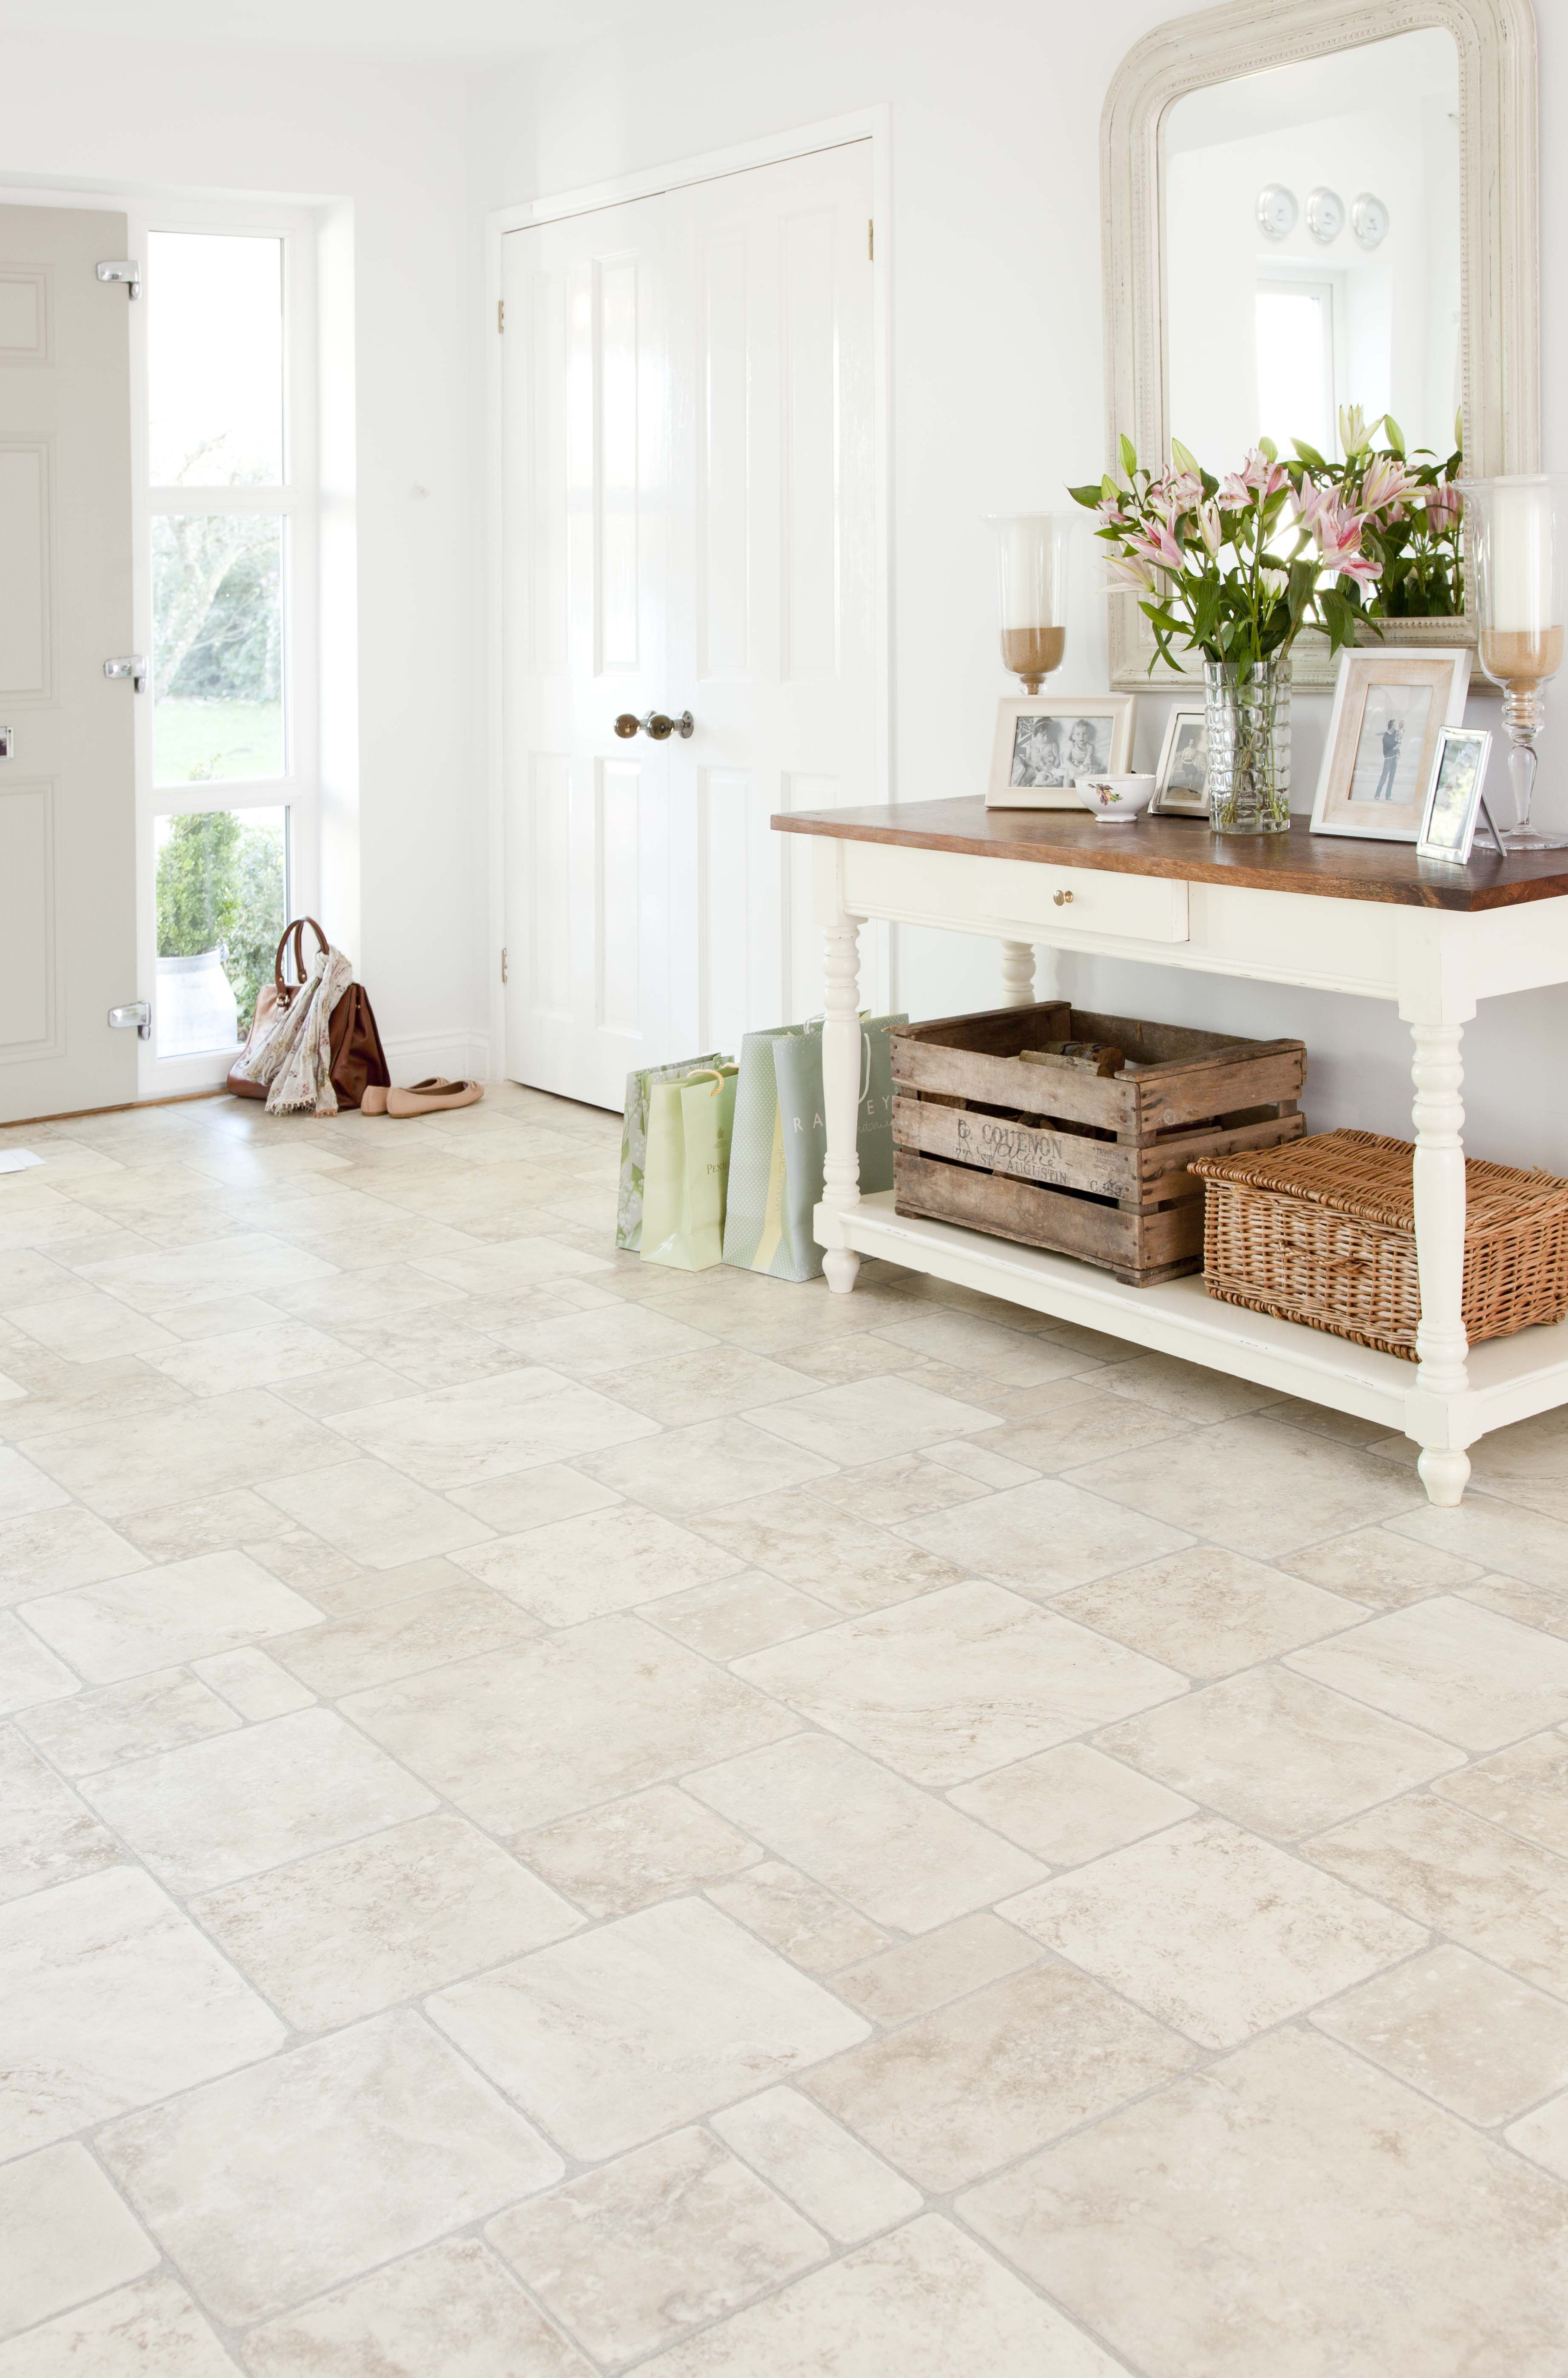 This Beautiful Entryway With Its Chic Southern Style Is The Perfect Room To Put In Ivc Flooring Www Ivcfloors Com Vinyl Flooring Flooring Vinyl Flooring Uk